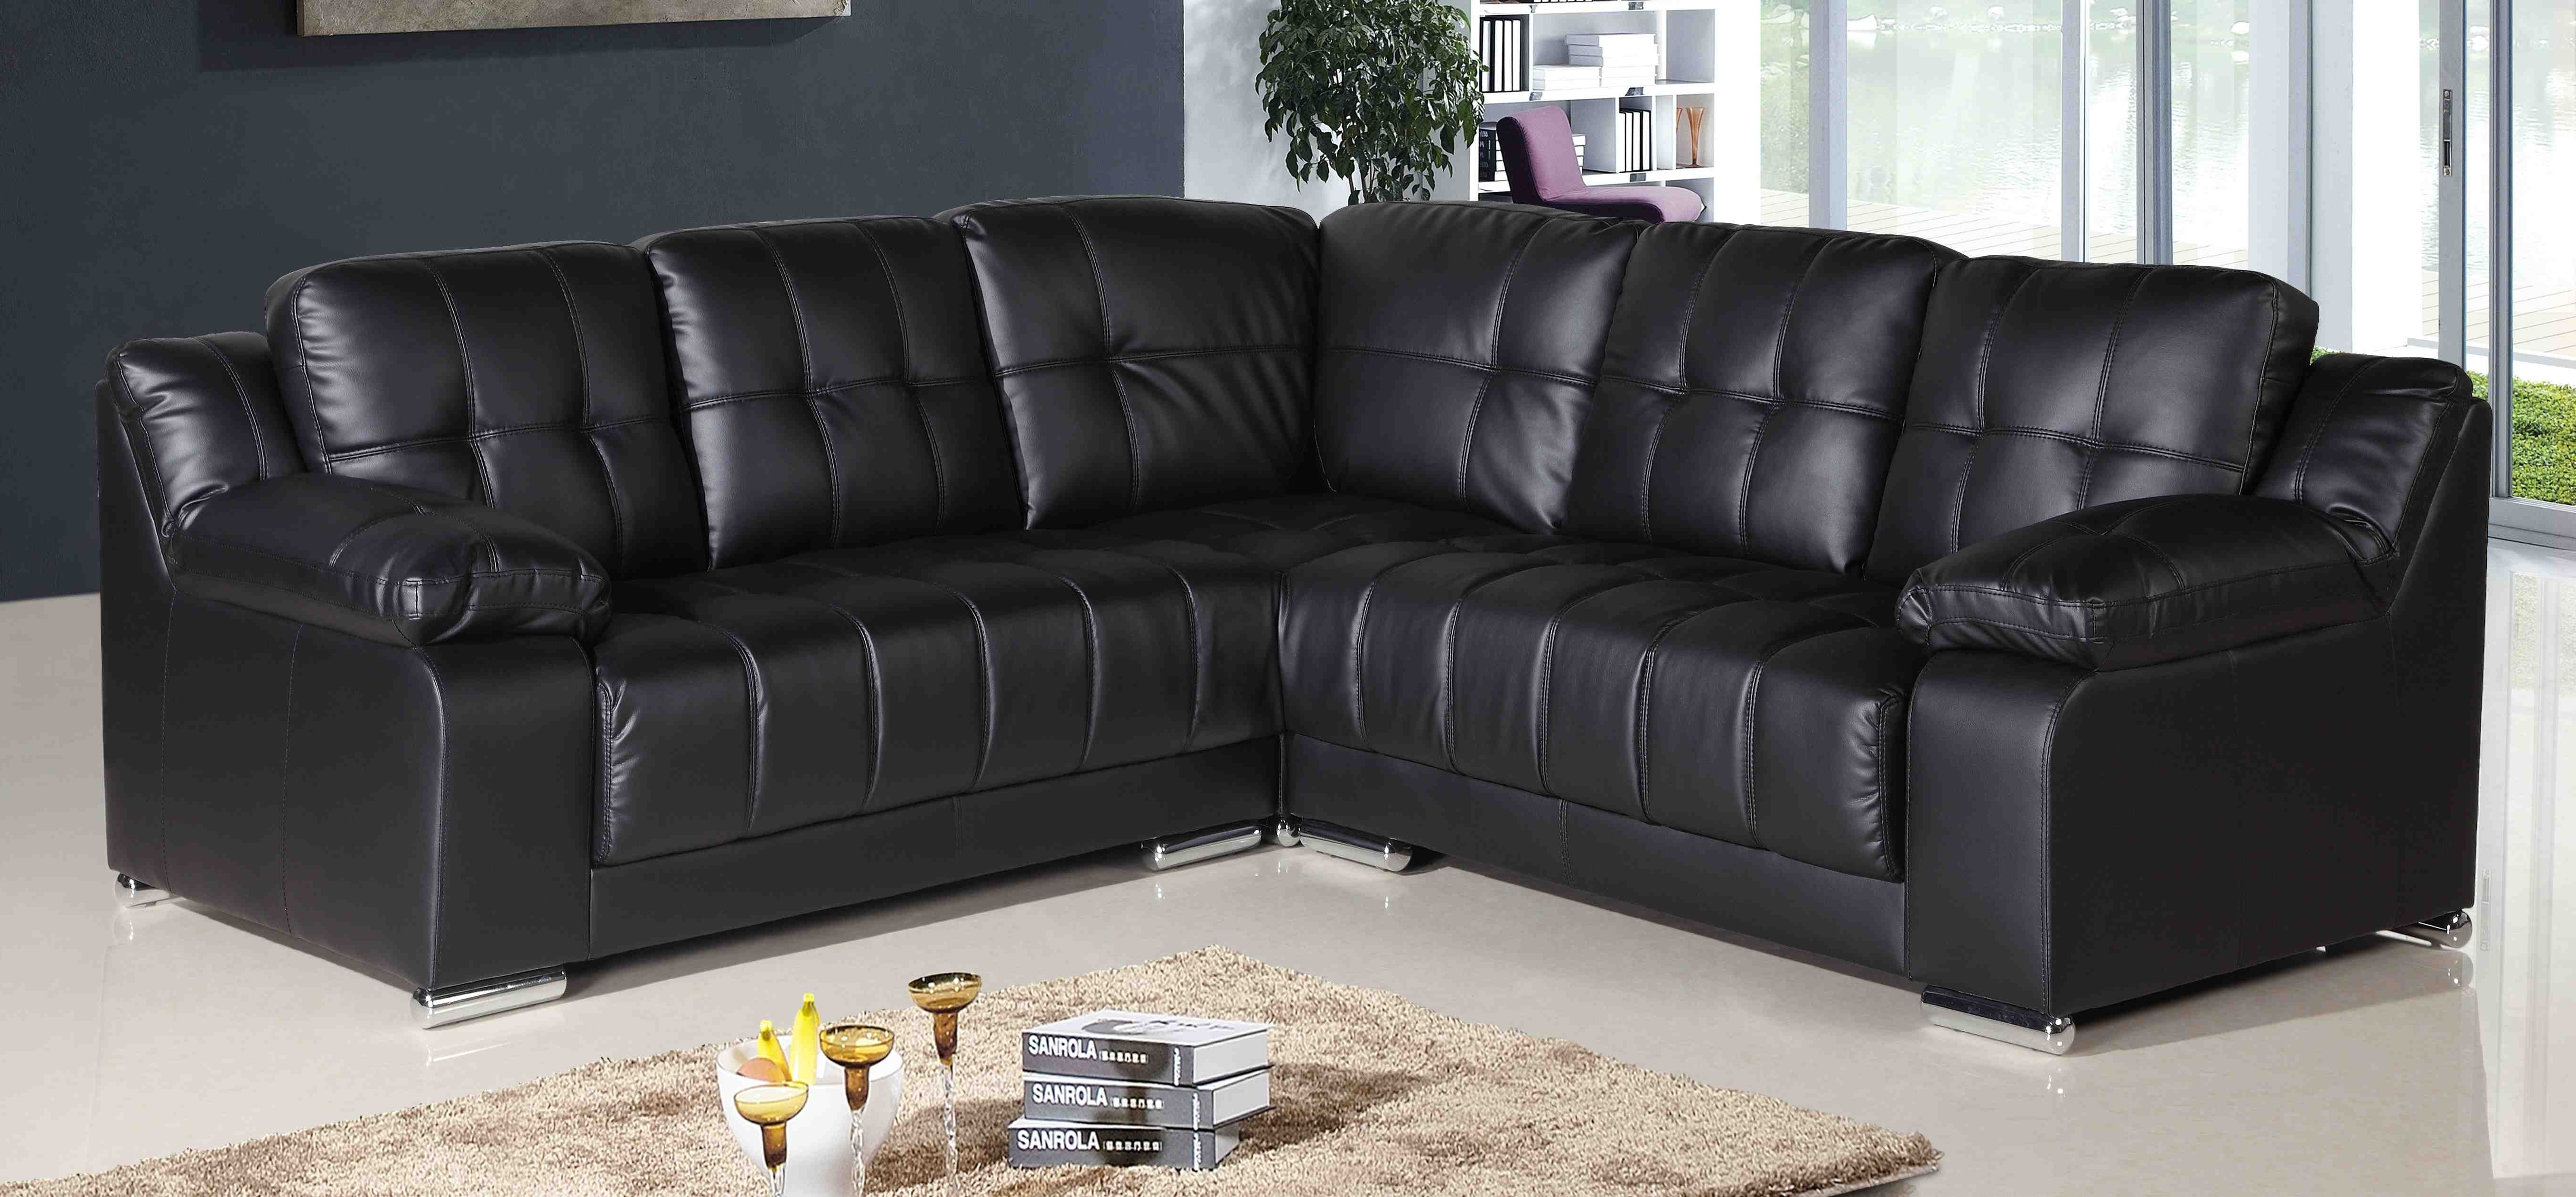 Popular Leather Corner Sofas In Extra Long Leather Corner Sofas • Leather Sofa (View 12 of 15)